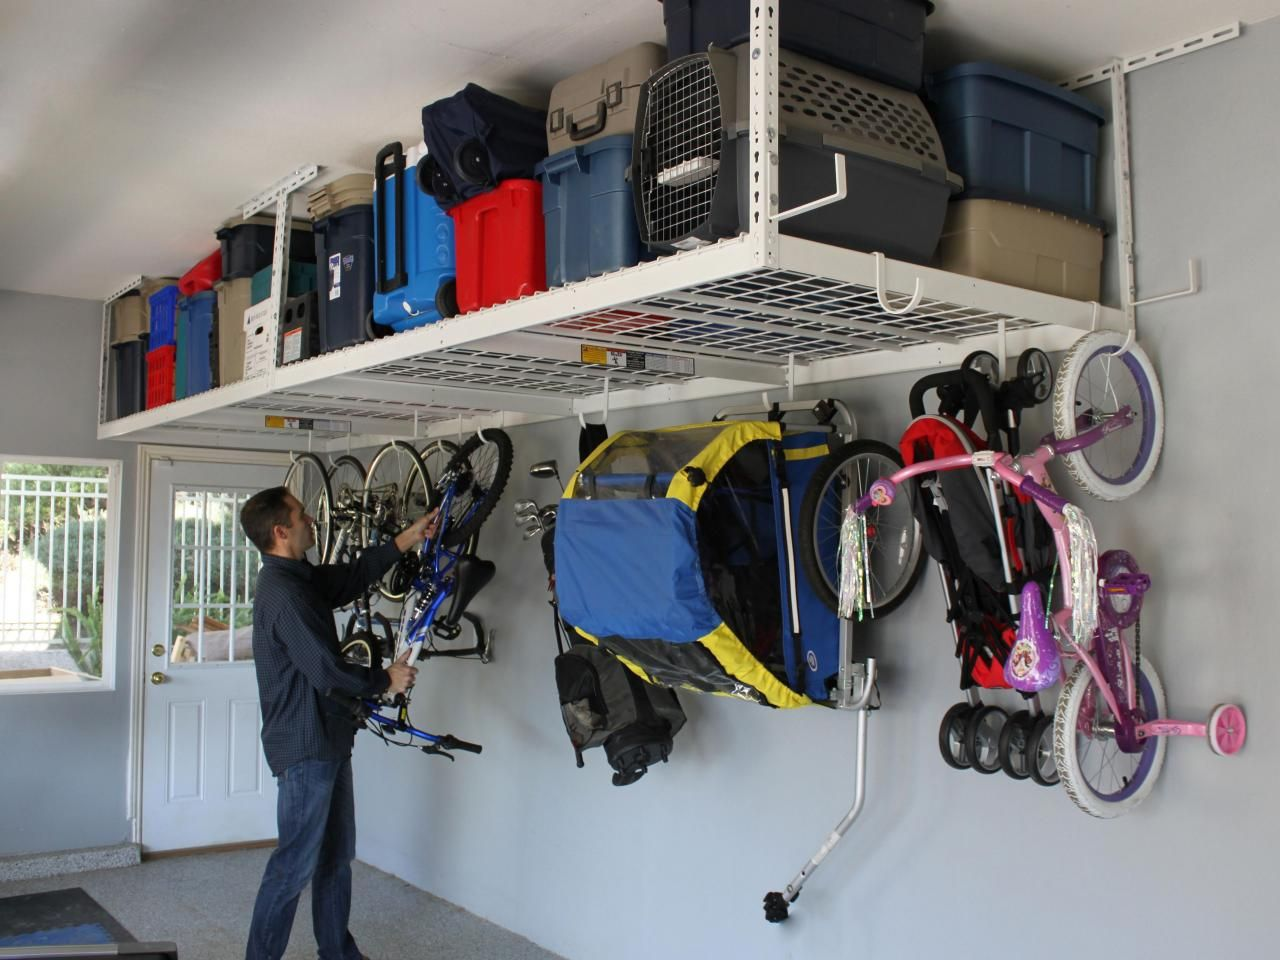 Garage Storage Hooks And Hangers Home Remodeling Ideas For Bats Theaters More Hgtv